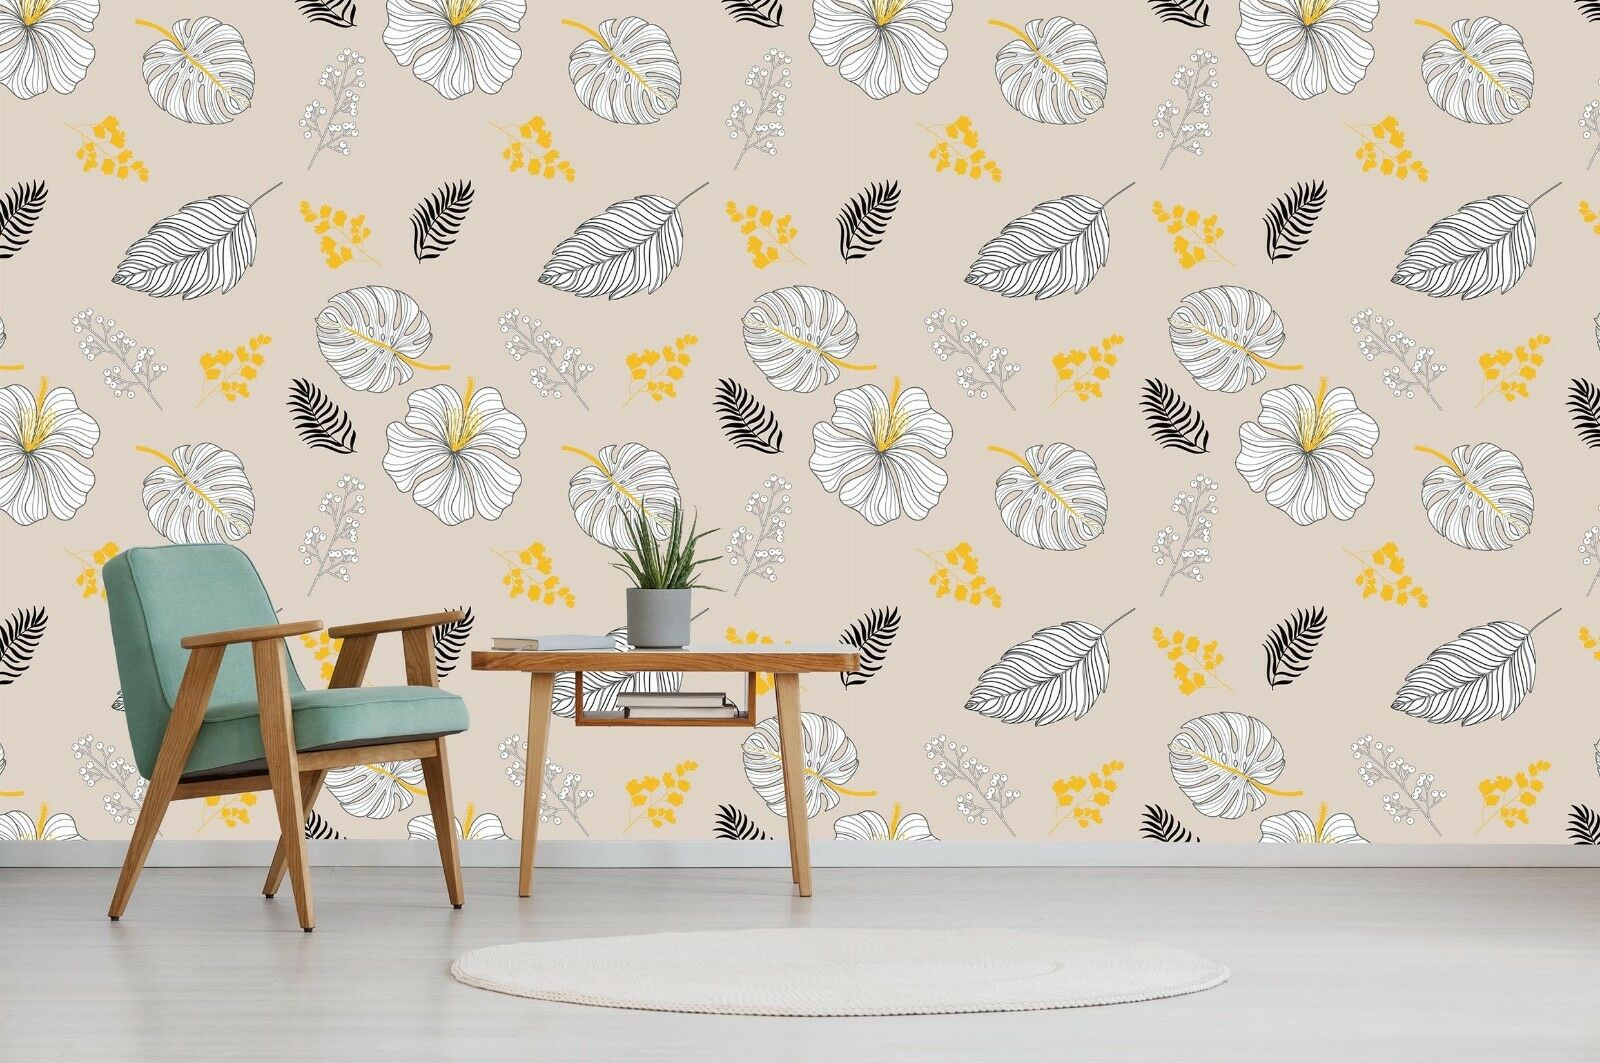 3D Flower Leaf 738 Wall Paper Print Wall Decal Deco Indoor Wall Murals US Summer